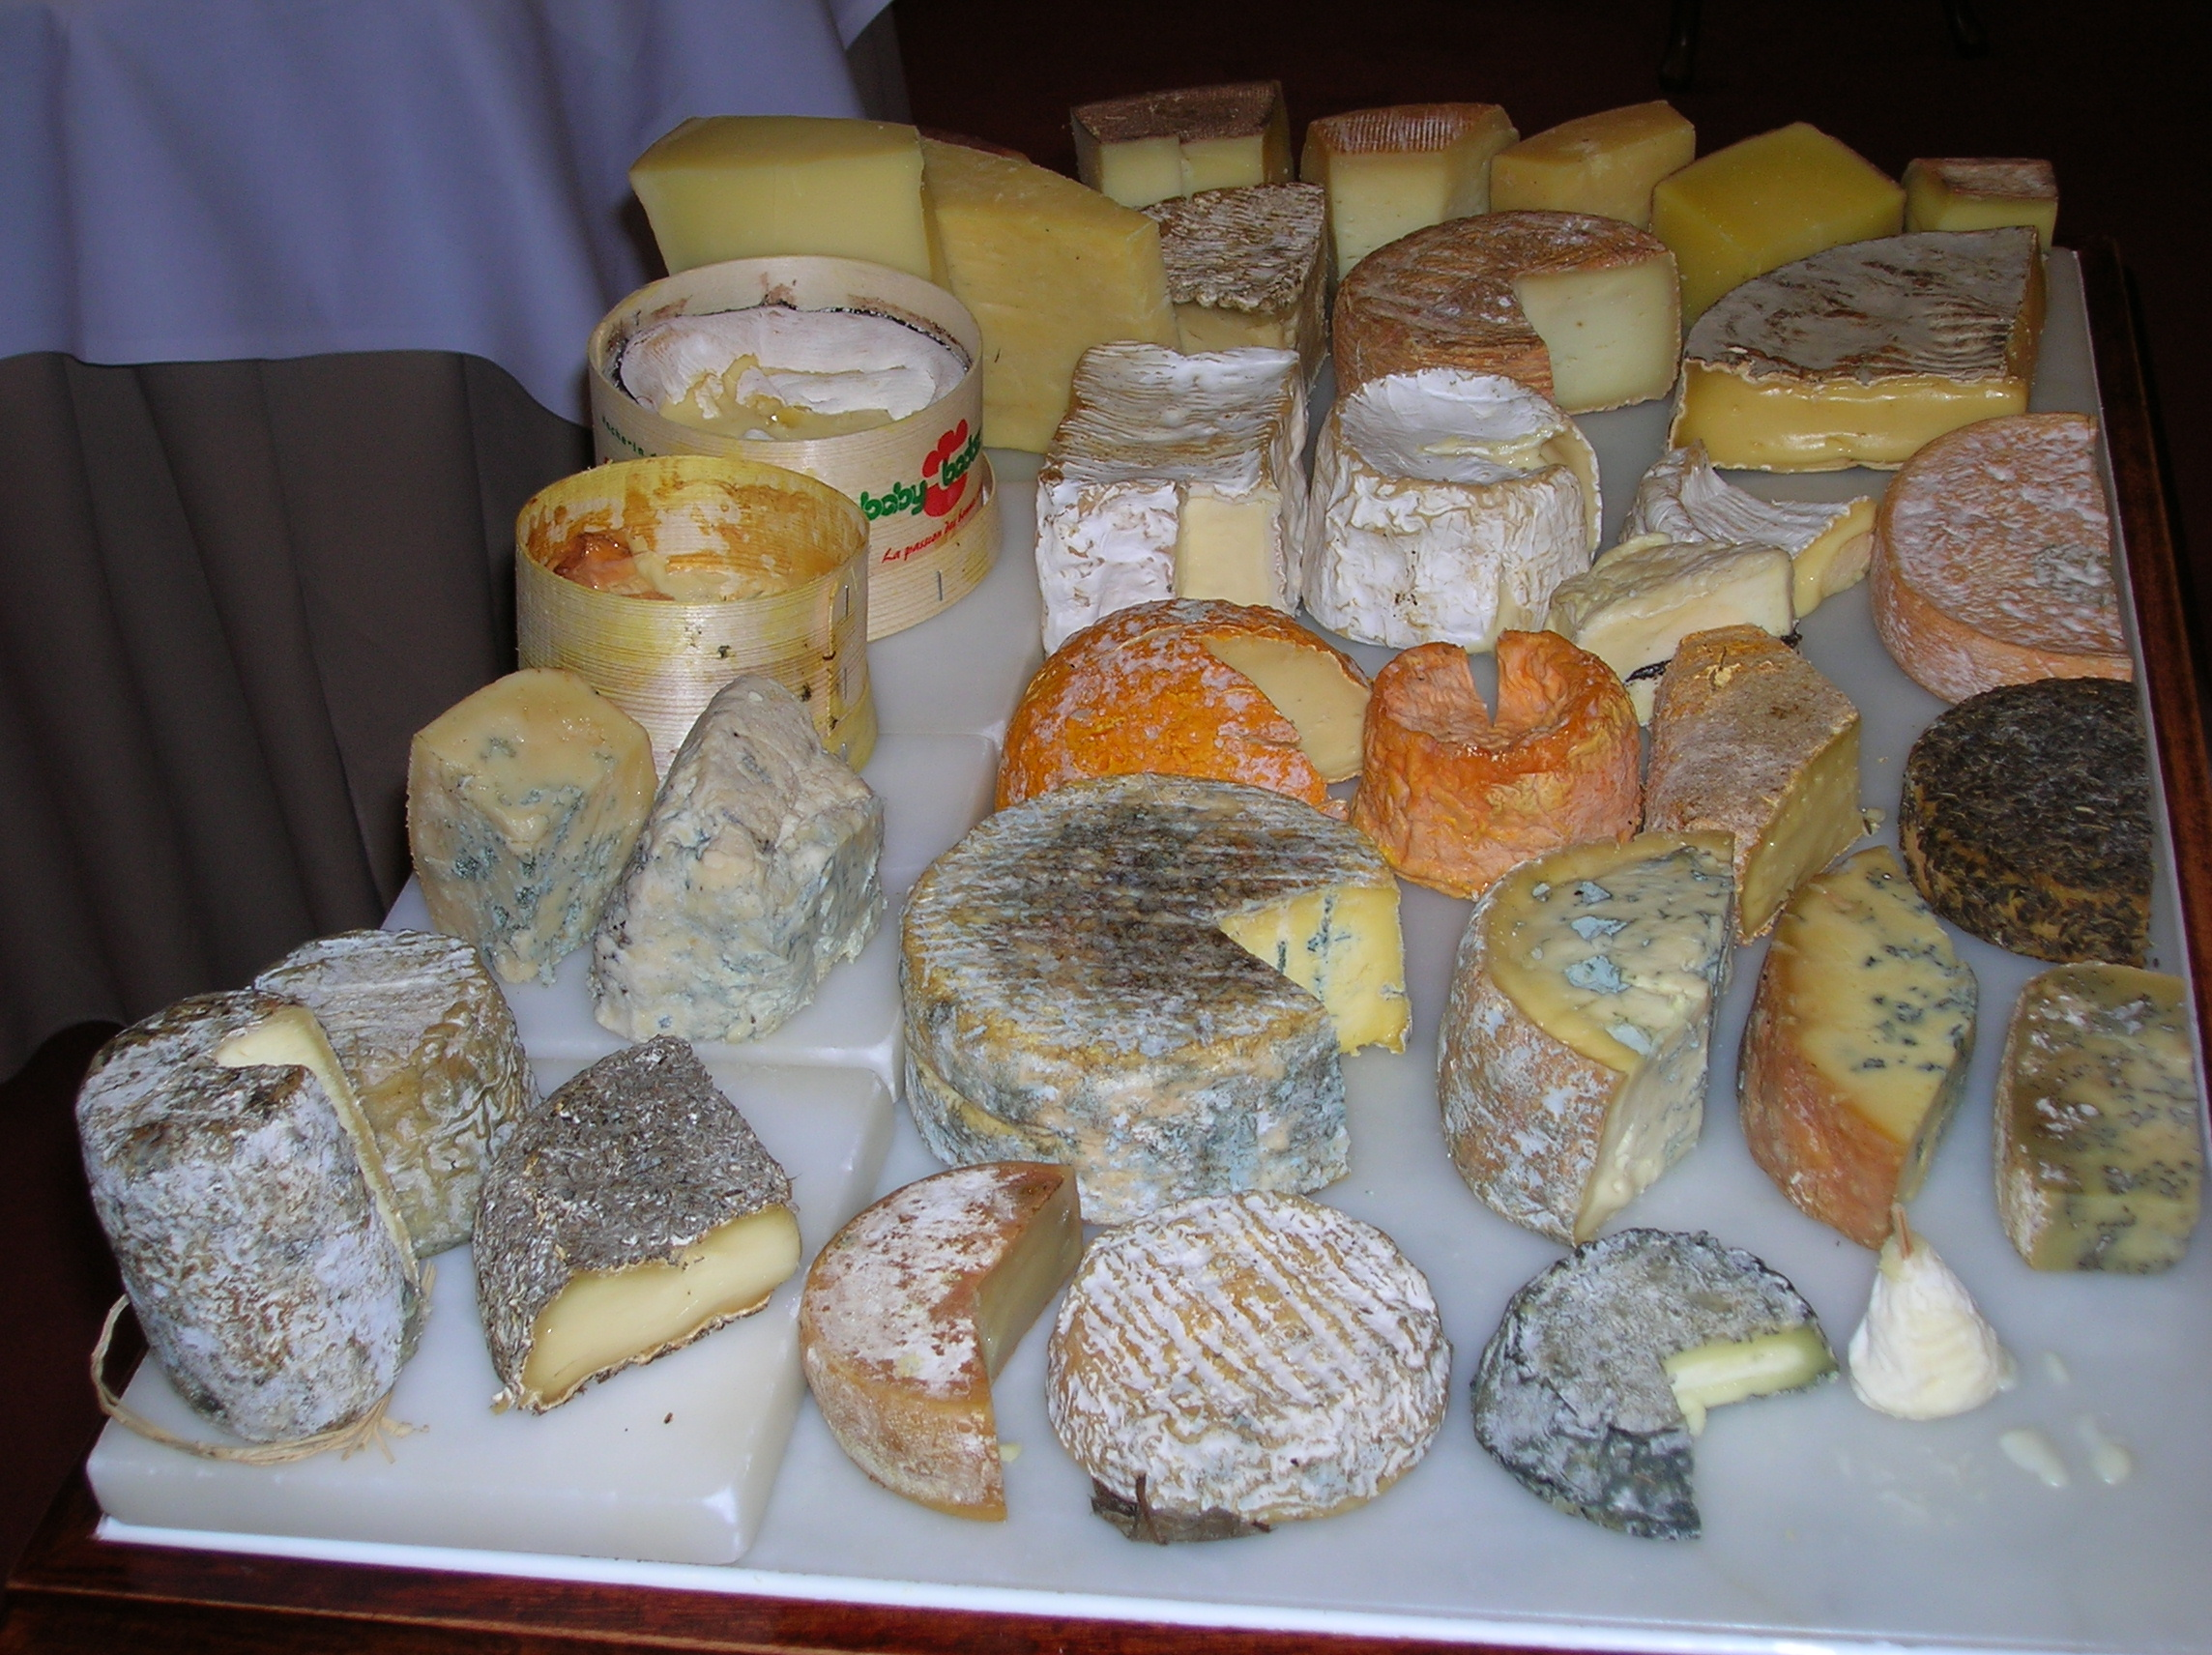 https://commons.wikimedia.org/wiki/File:Cheese_Cart_in_Gordon_Ramsay_restaurant.JPG